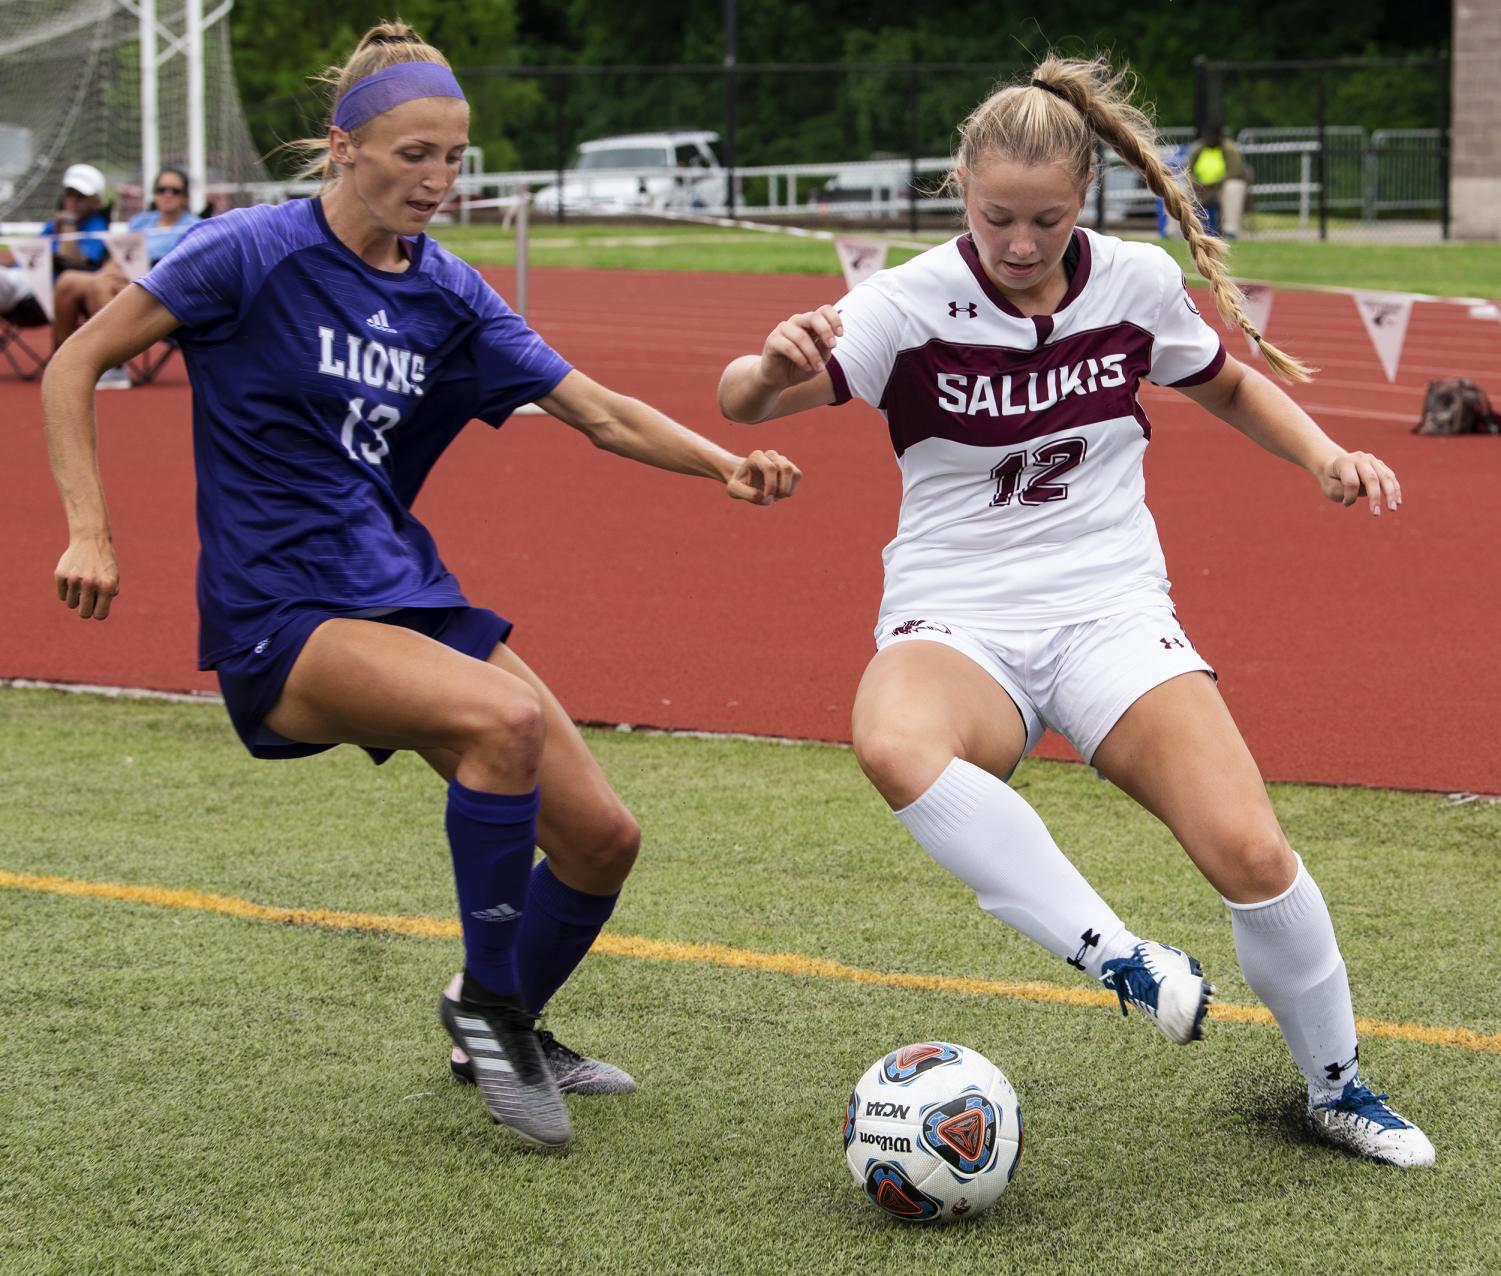 Madison Meiring, of Martinsville, Ind., protects the ball from a defender on Sunday, Aug. 25, 2019, at the SIU vs. North Alabama soccer game in Carbondale.